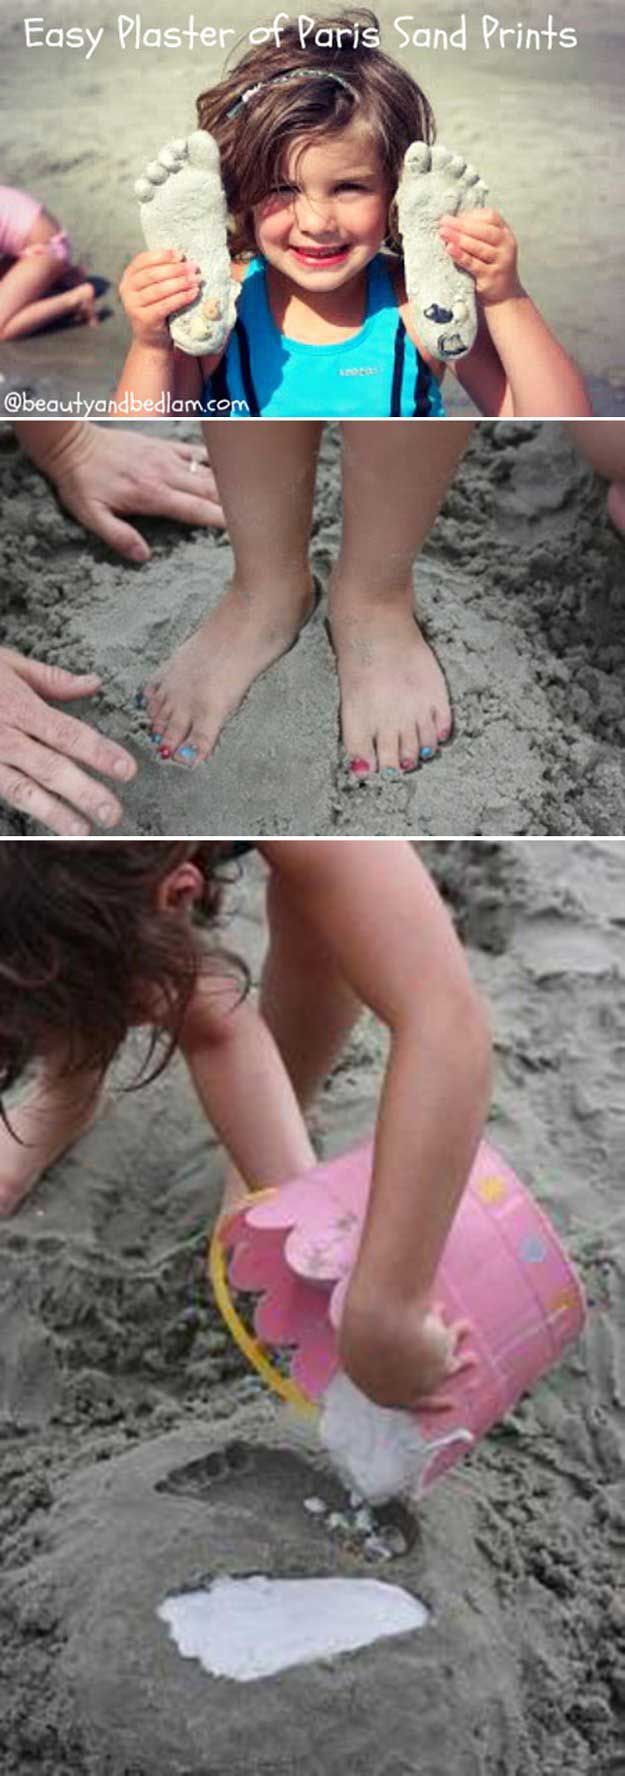 Plaster of Paris Sand Prints | Super Fun FREE Things To Do At The Beach